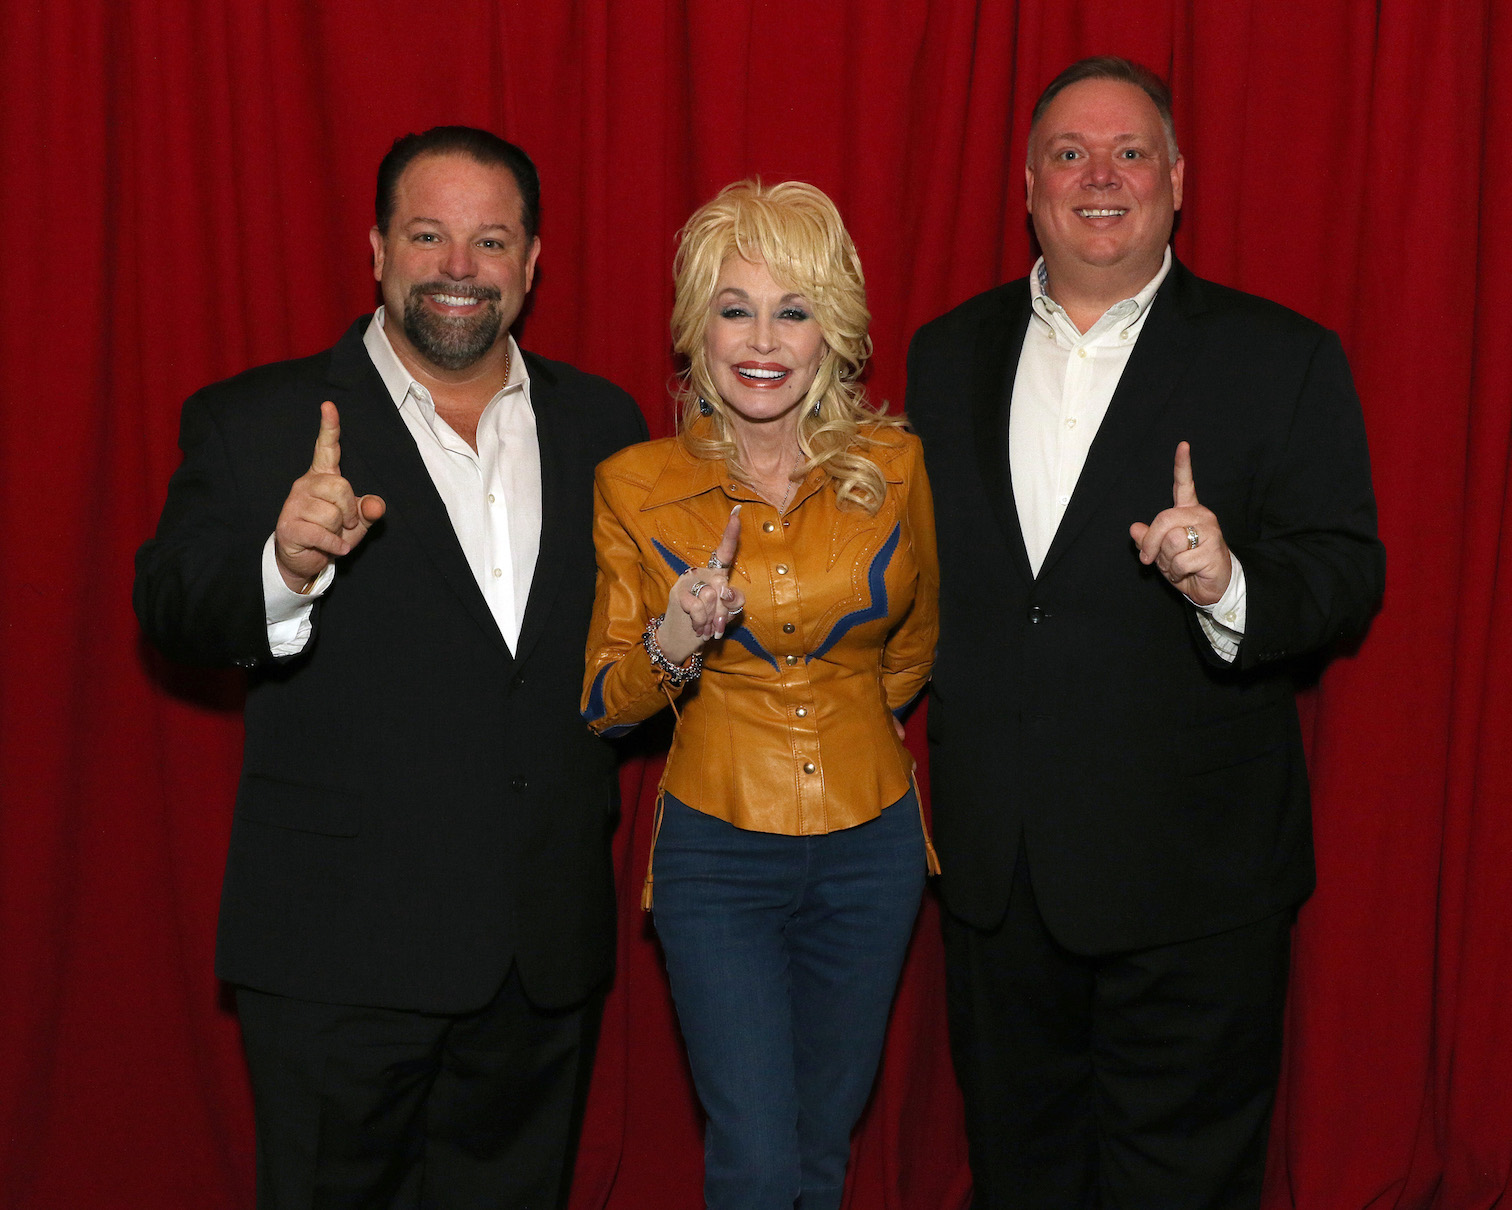 From left, Danny Nozell, CEO, CTK Management; Dolly Parton; and Kirt Webster, president/CEO, Webster Public Relations.